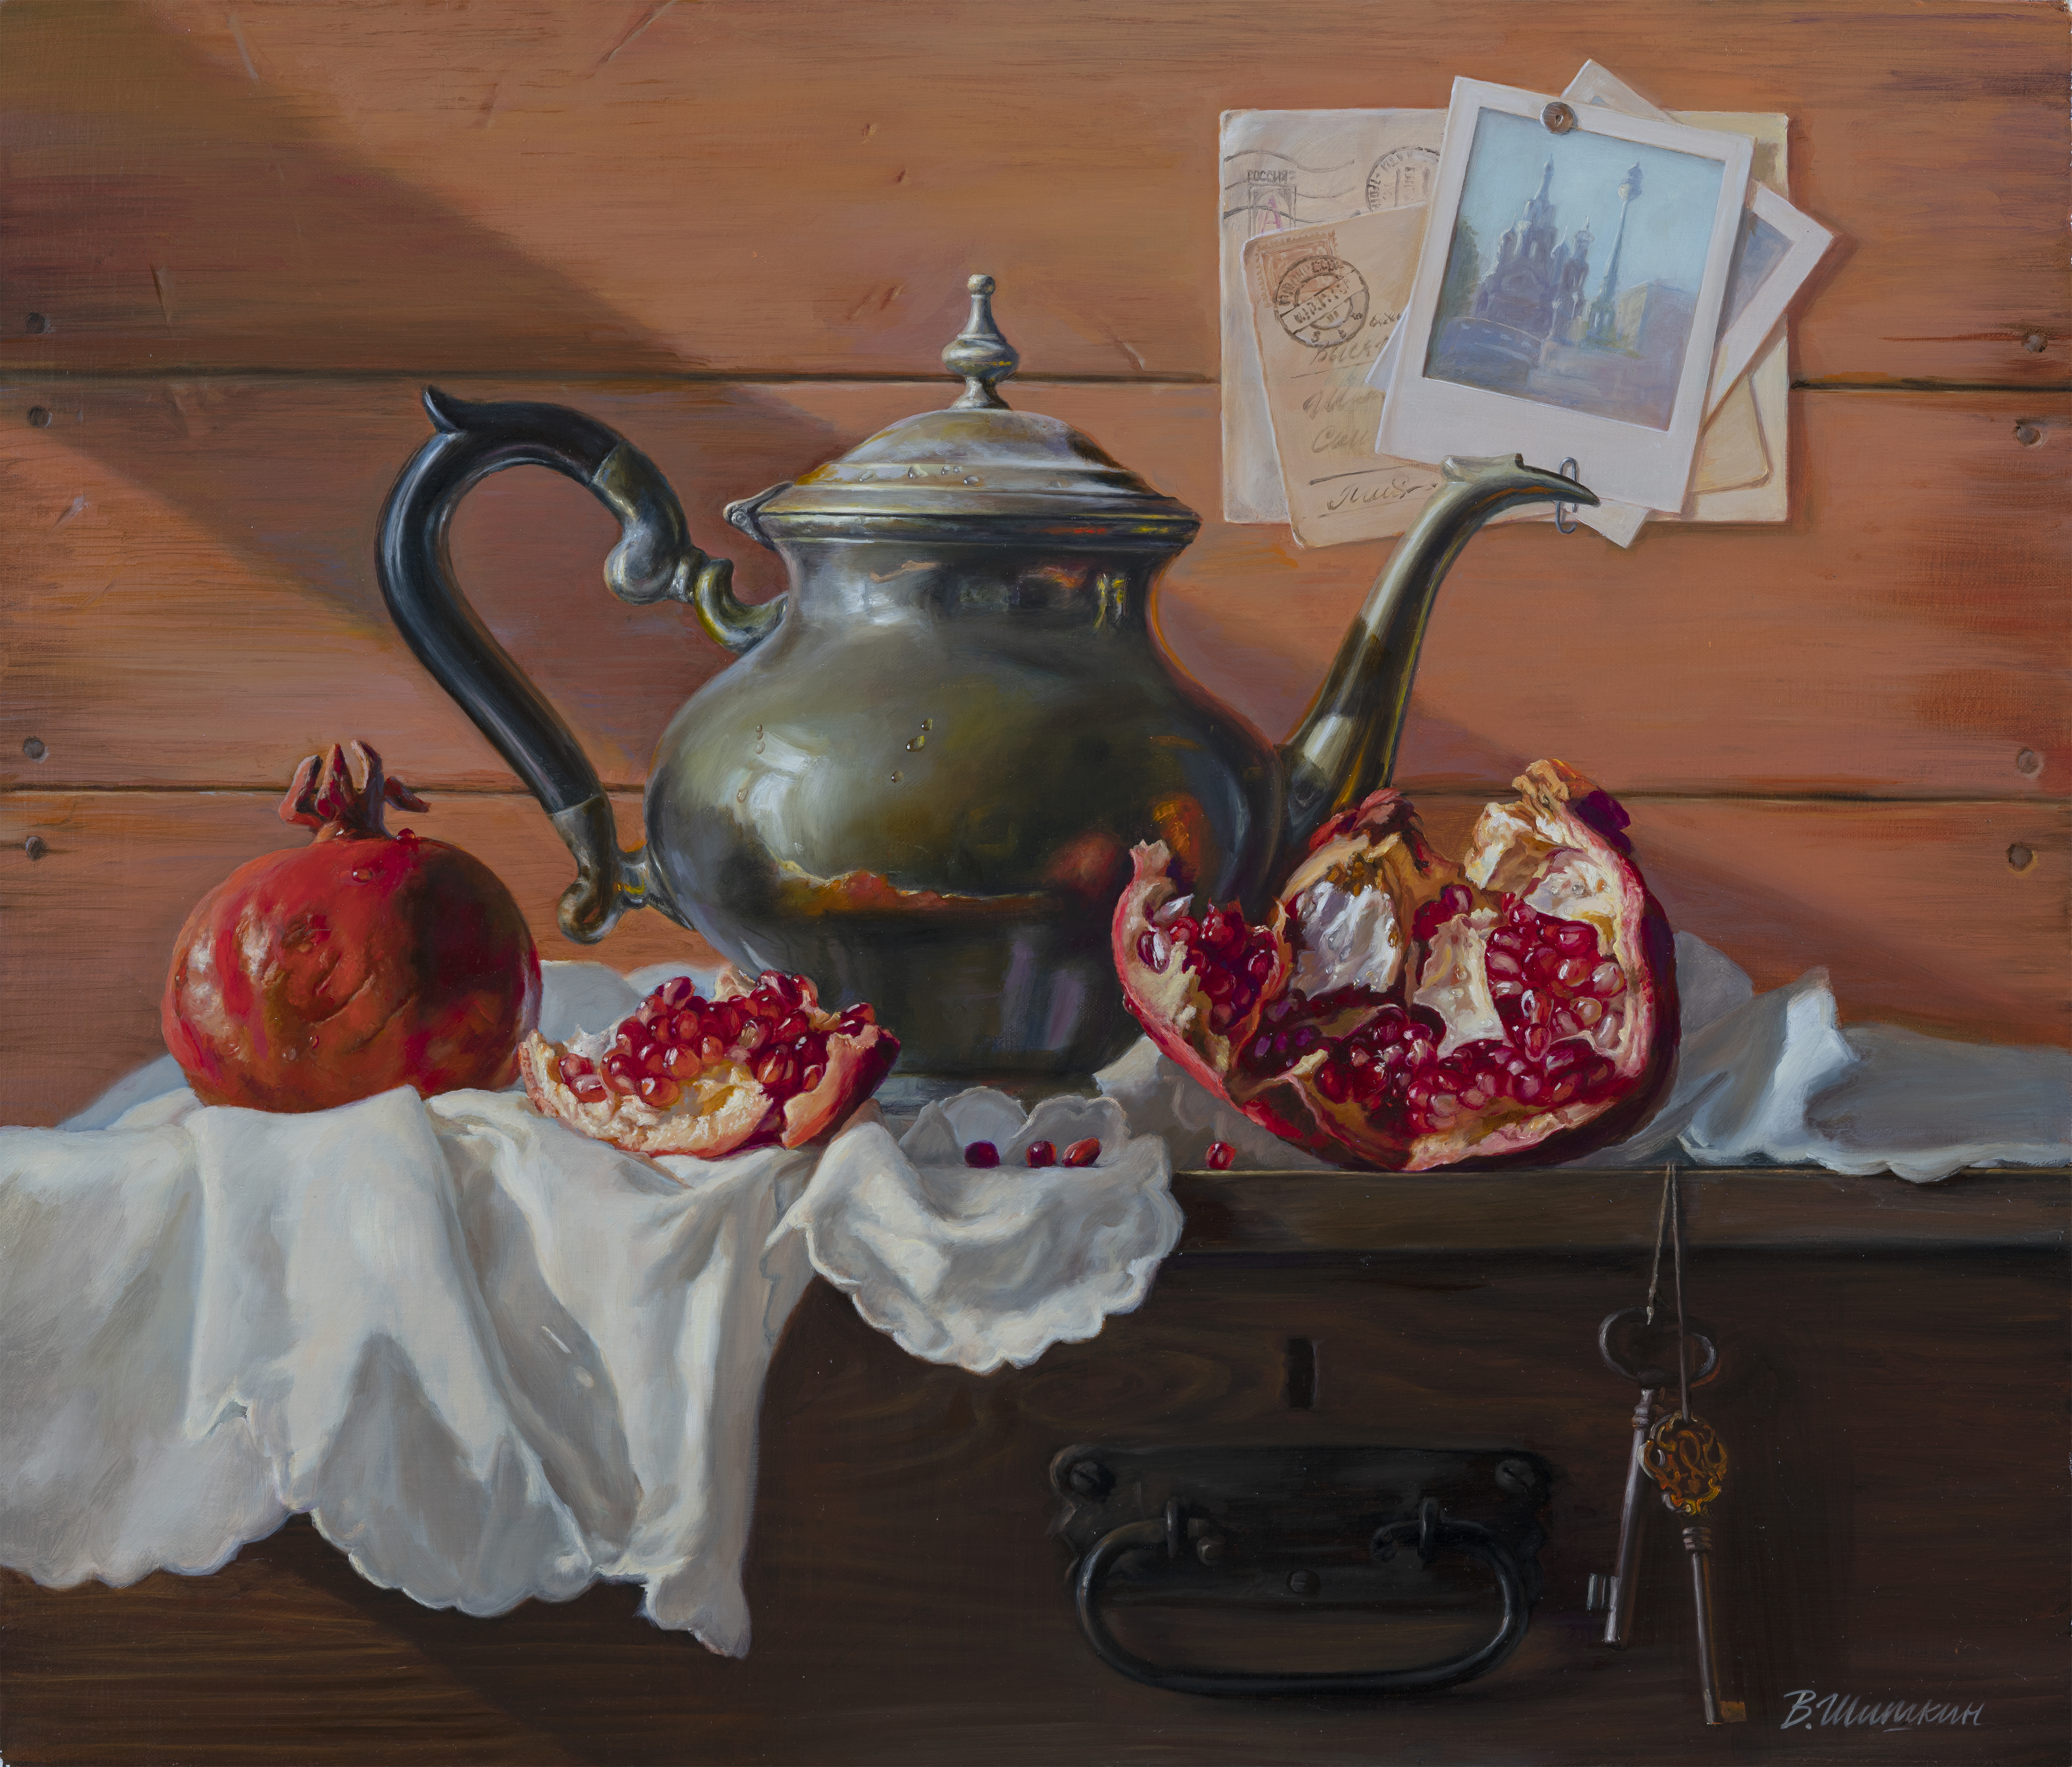 Teapot on the boards